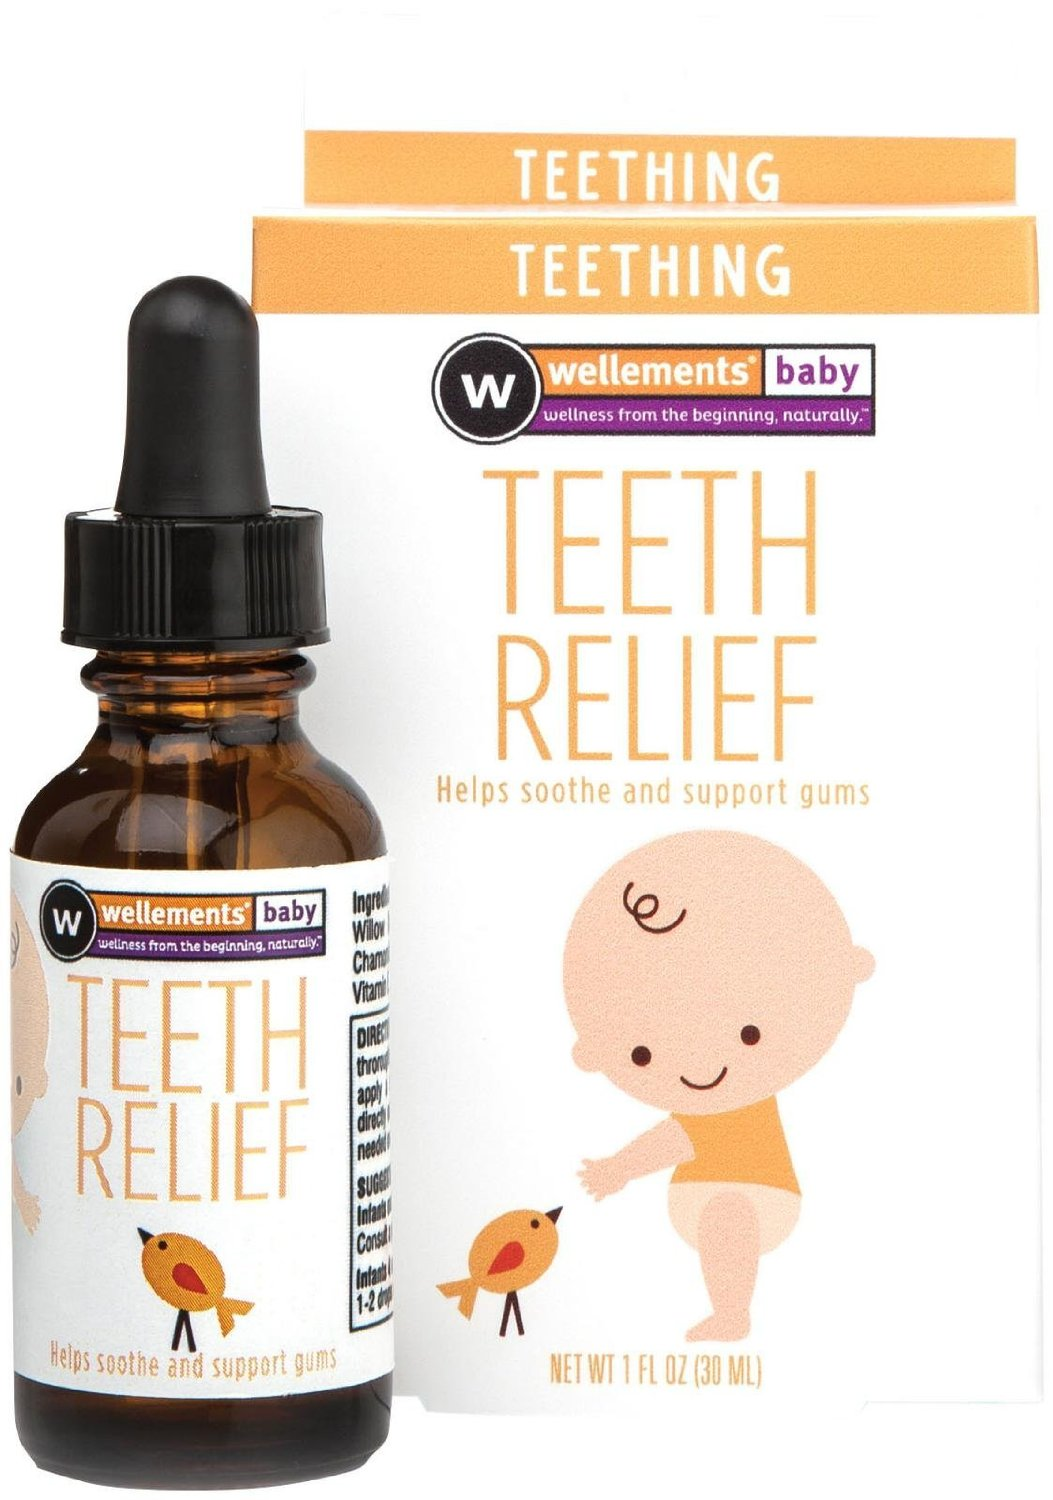 Dung dịch mọc răng dịu nhẹ Wellements Teeth Relief